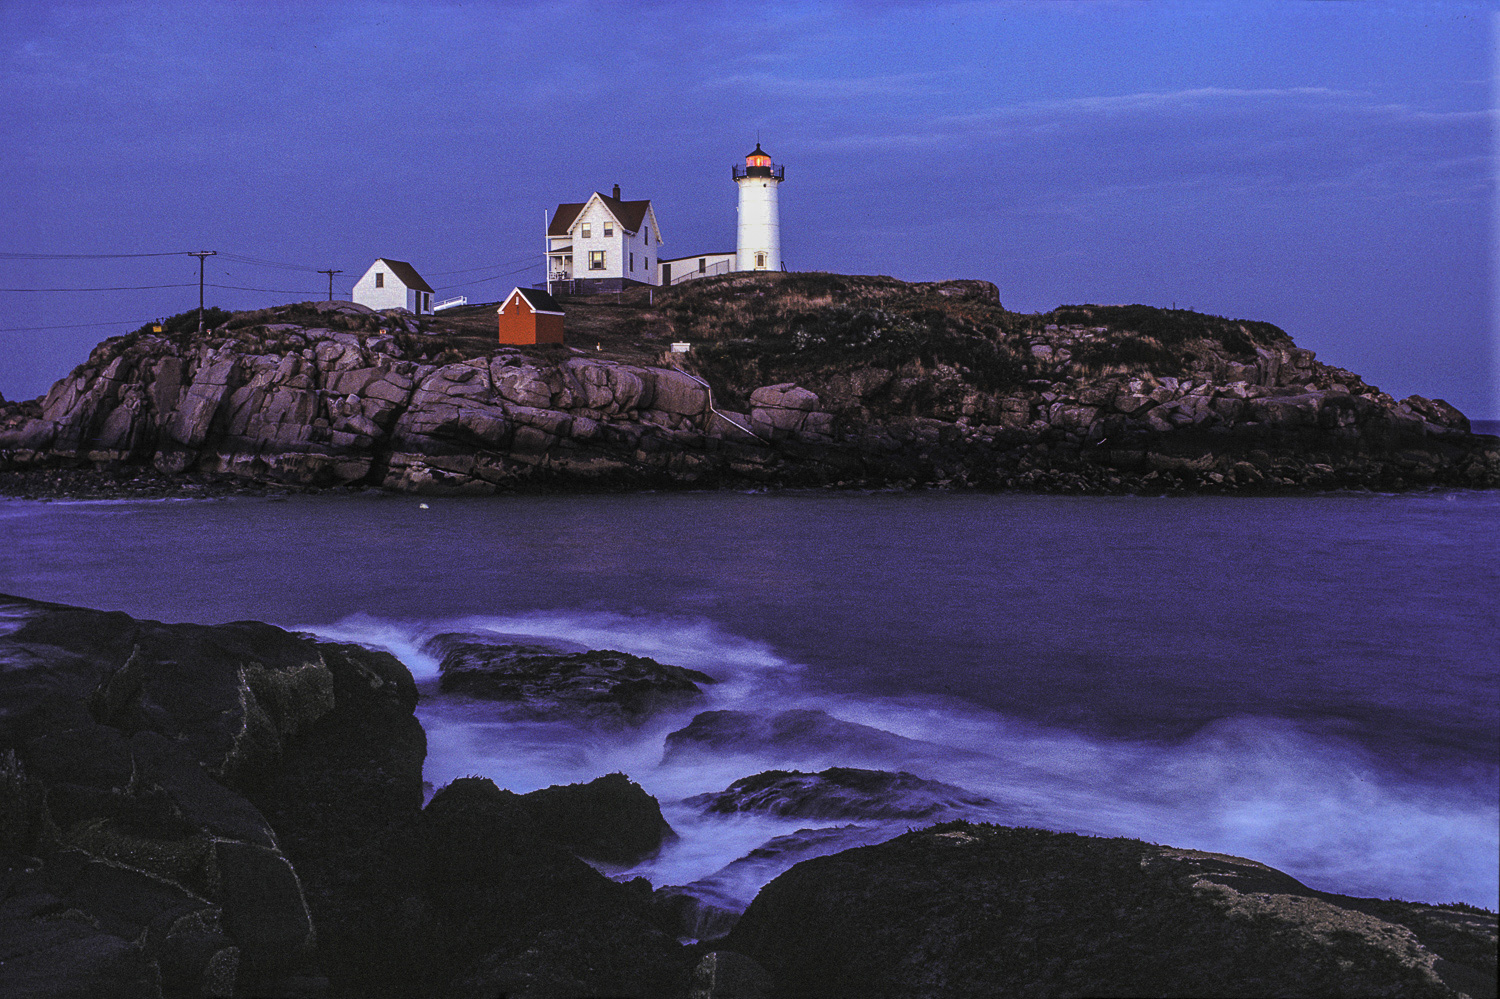 Cape Neddick Lighthouse, Nubble Light, Cape Neddick, Maine, USA